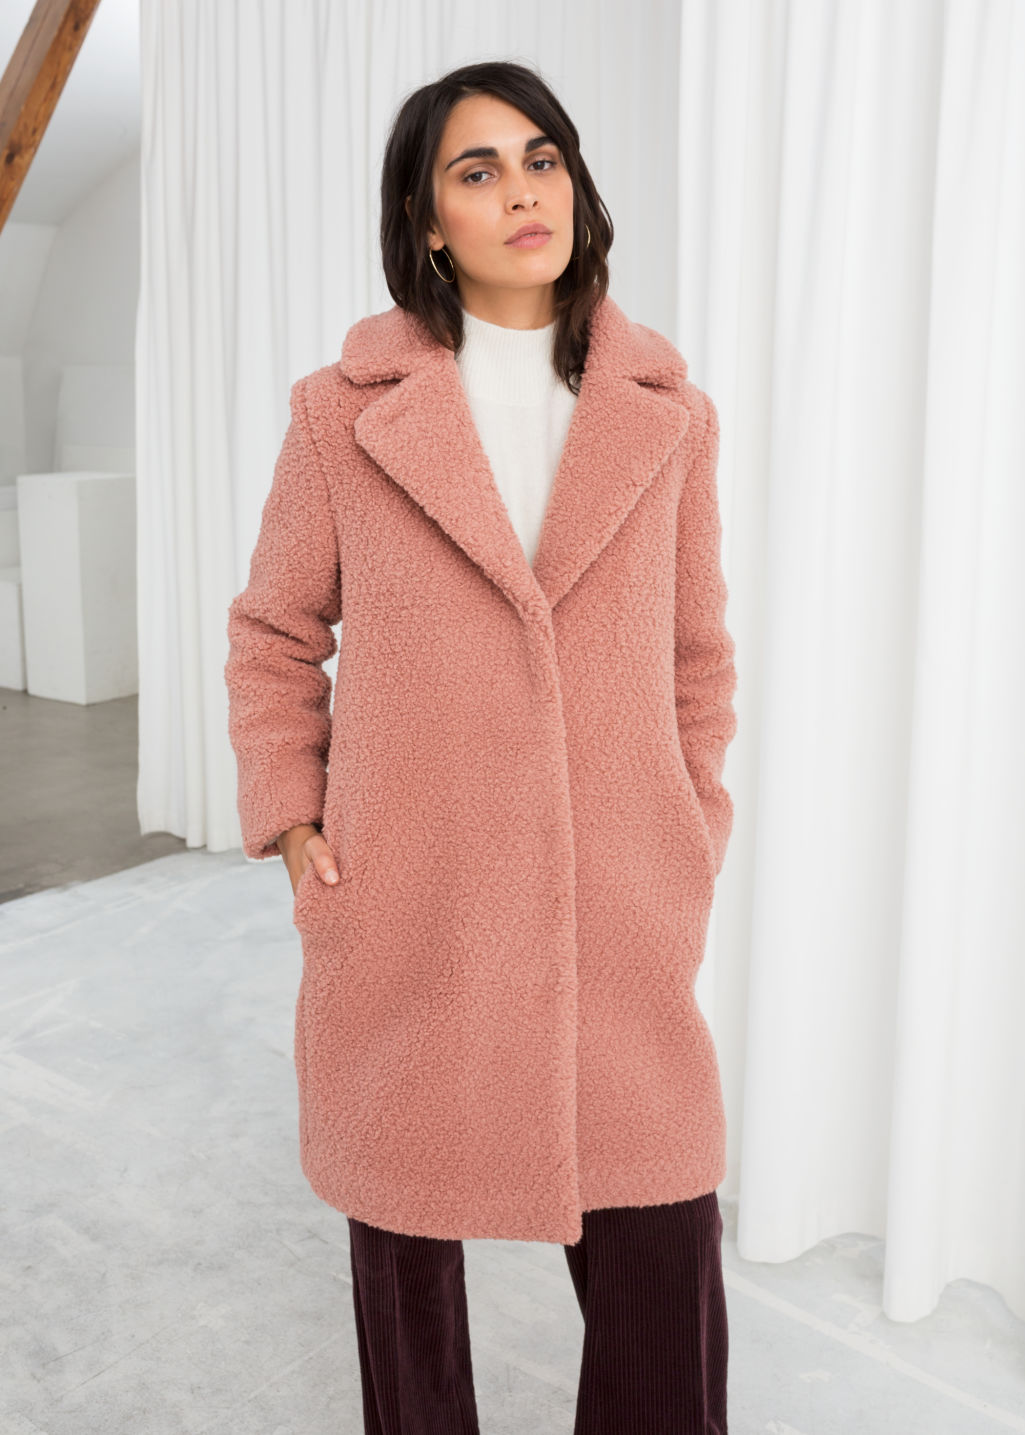 30 Teddy Bear Coats To Keep You Warm This Winter